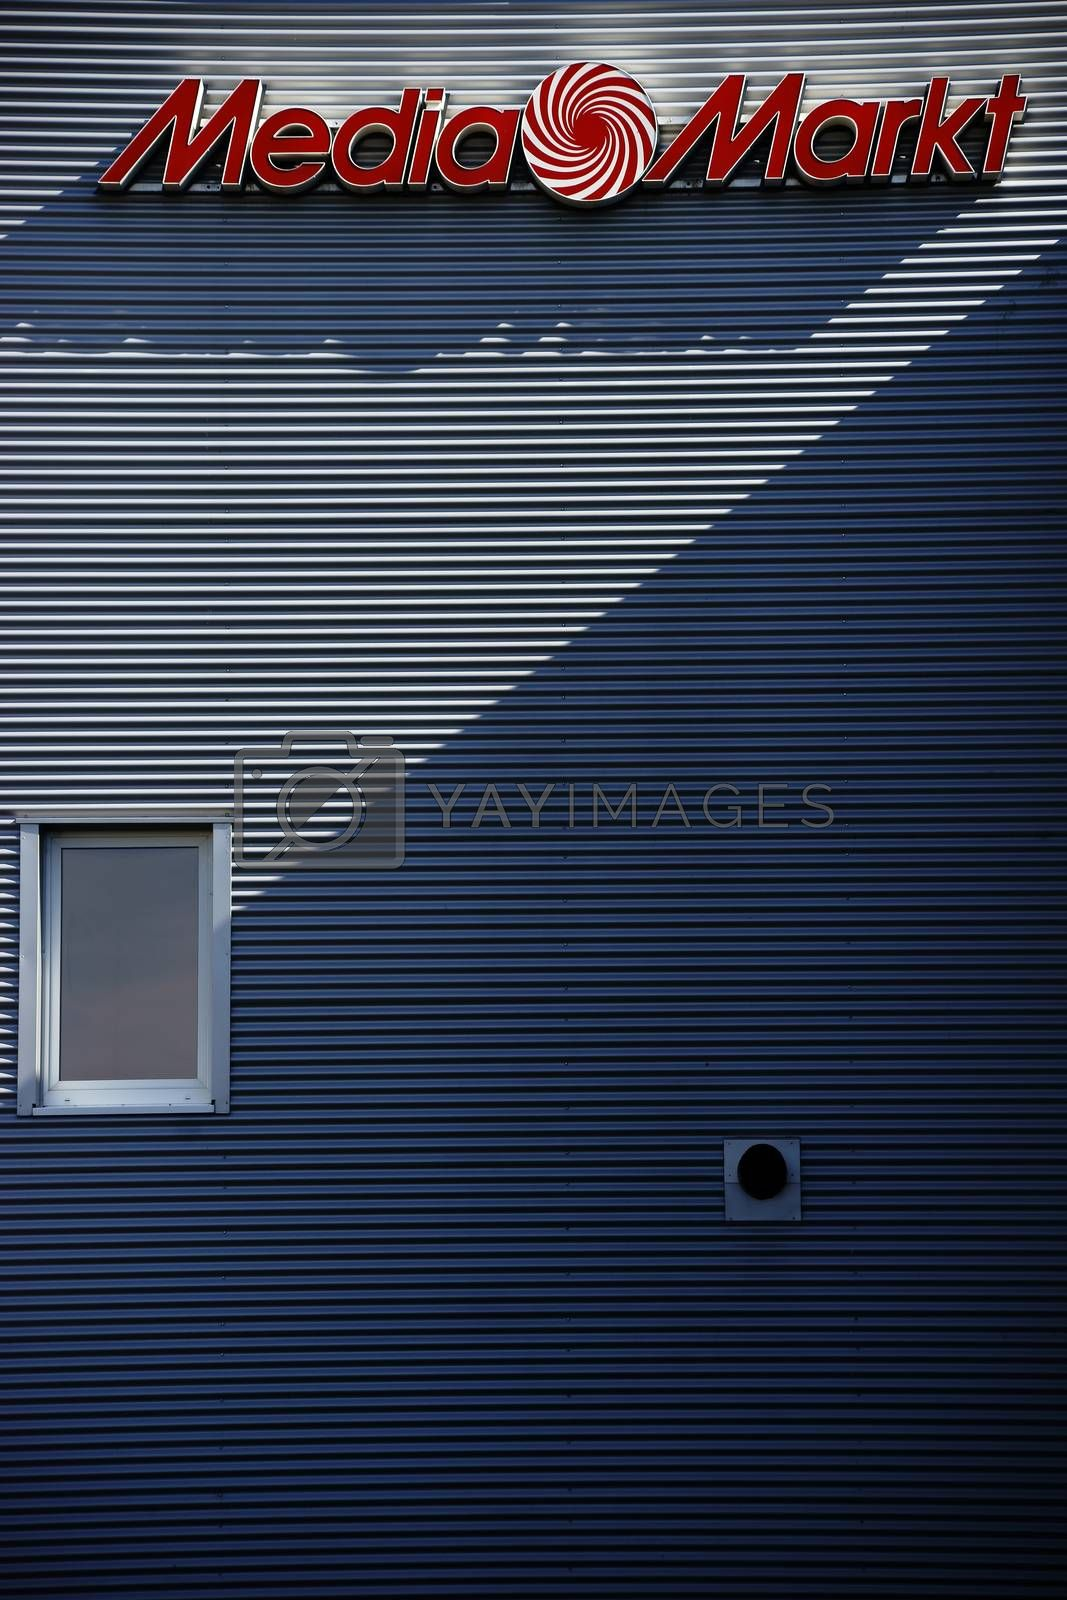 Mainz, Germany - August 28, 2015: The signboard of the electronics and HIFI market Media Markt on a modern corrugated iron facade that casts a shadow on August 28, 2015 in Mainz.